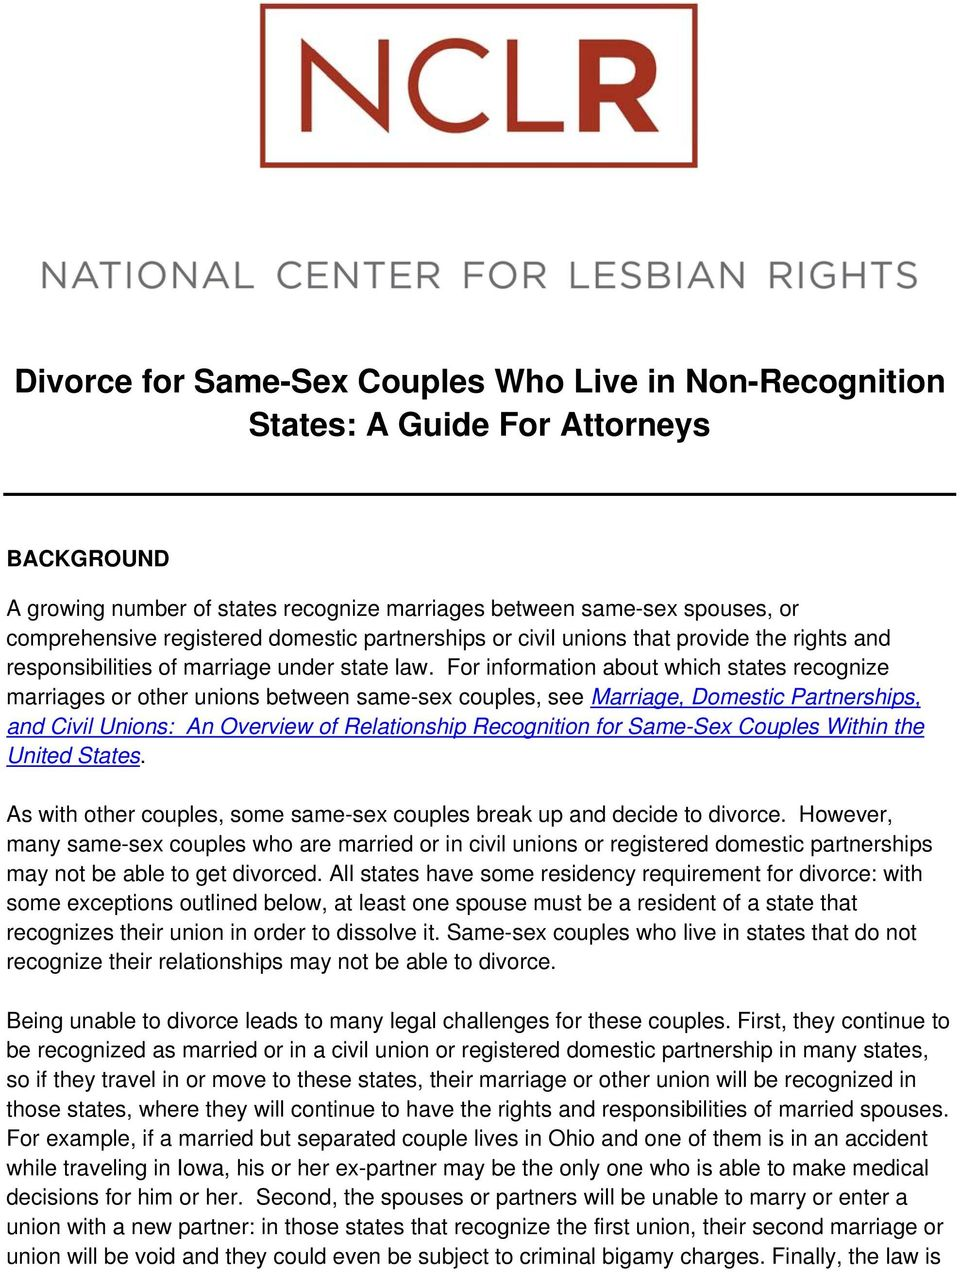 For information about which states recognize marriages or other unions between same-sex couples, see Marriage, Domestic Partnerships, and Civil Unions: An Overview of Relationship Recognition for